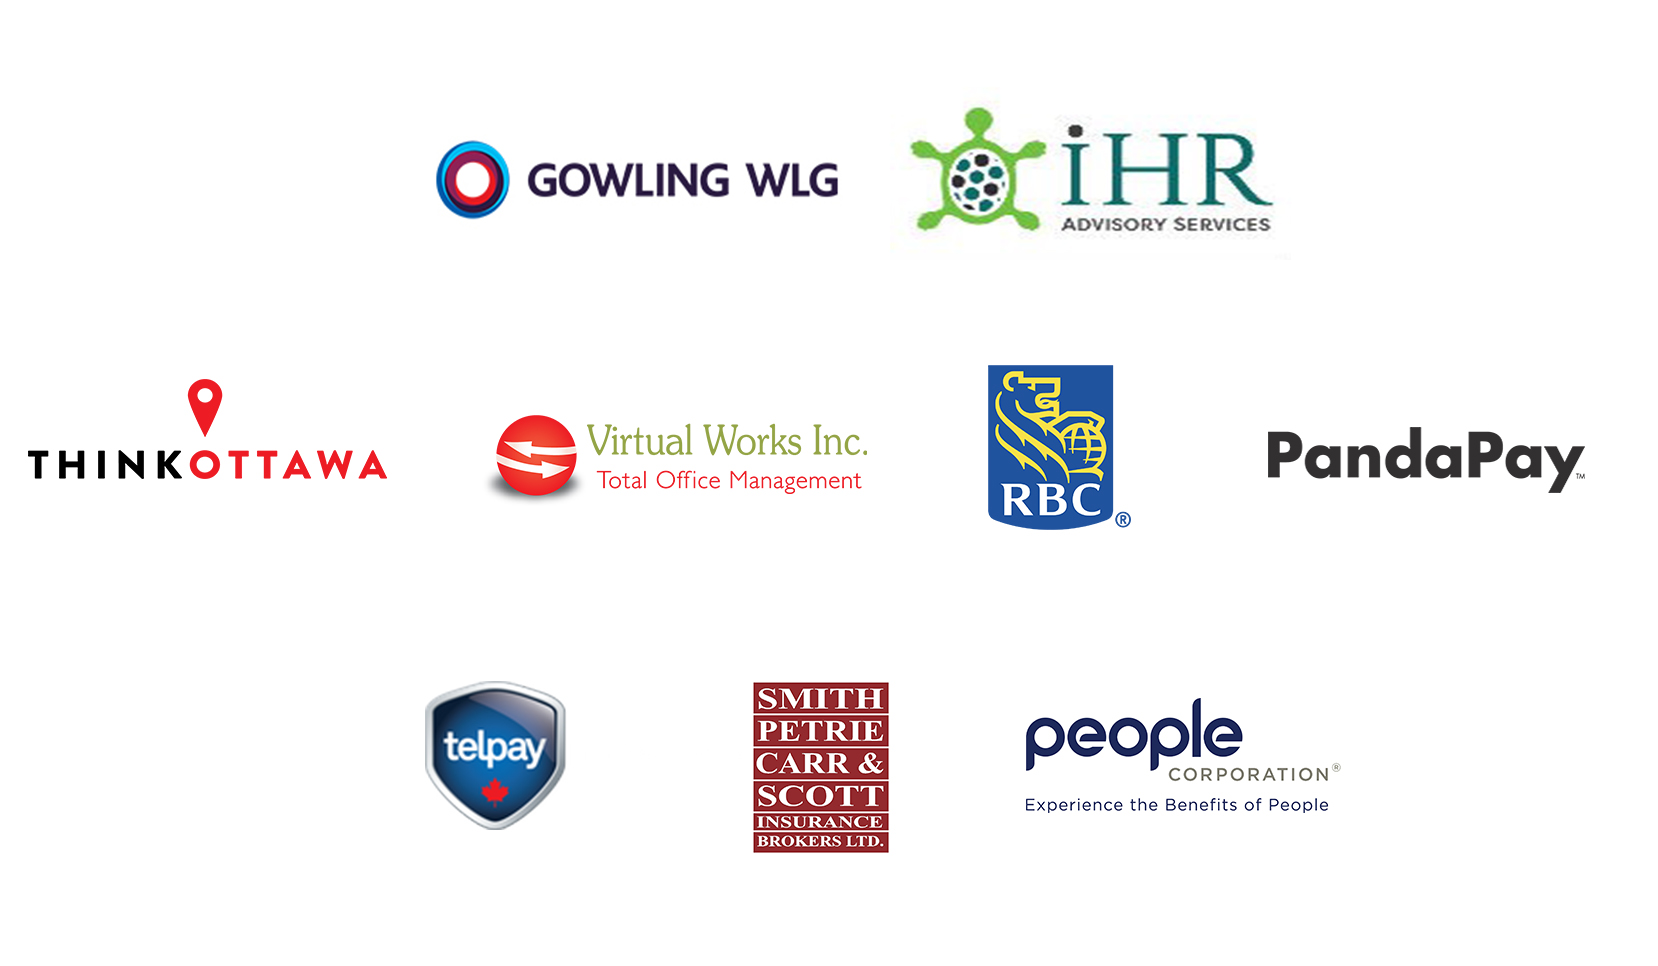 Gowling WLG; iHR Advisory Services; ThinkOttawa; Virtual Works Inc. Total Office Management; RBC; PandaPay; Telpay; Smith, Petrie, Carr & Scott Insurance Brokers Ltd.; People Corporation, Experience the Benefits of People